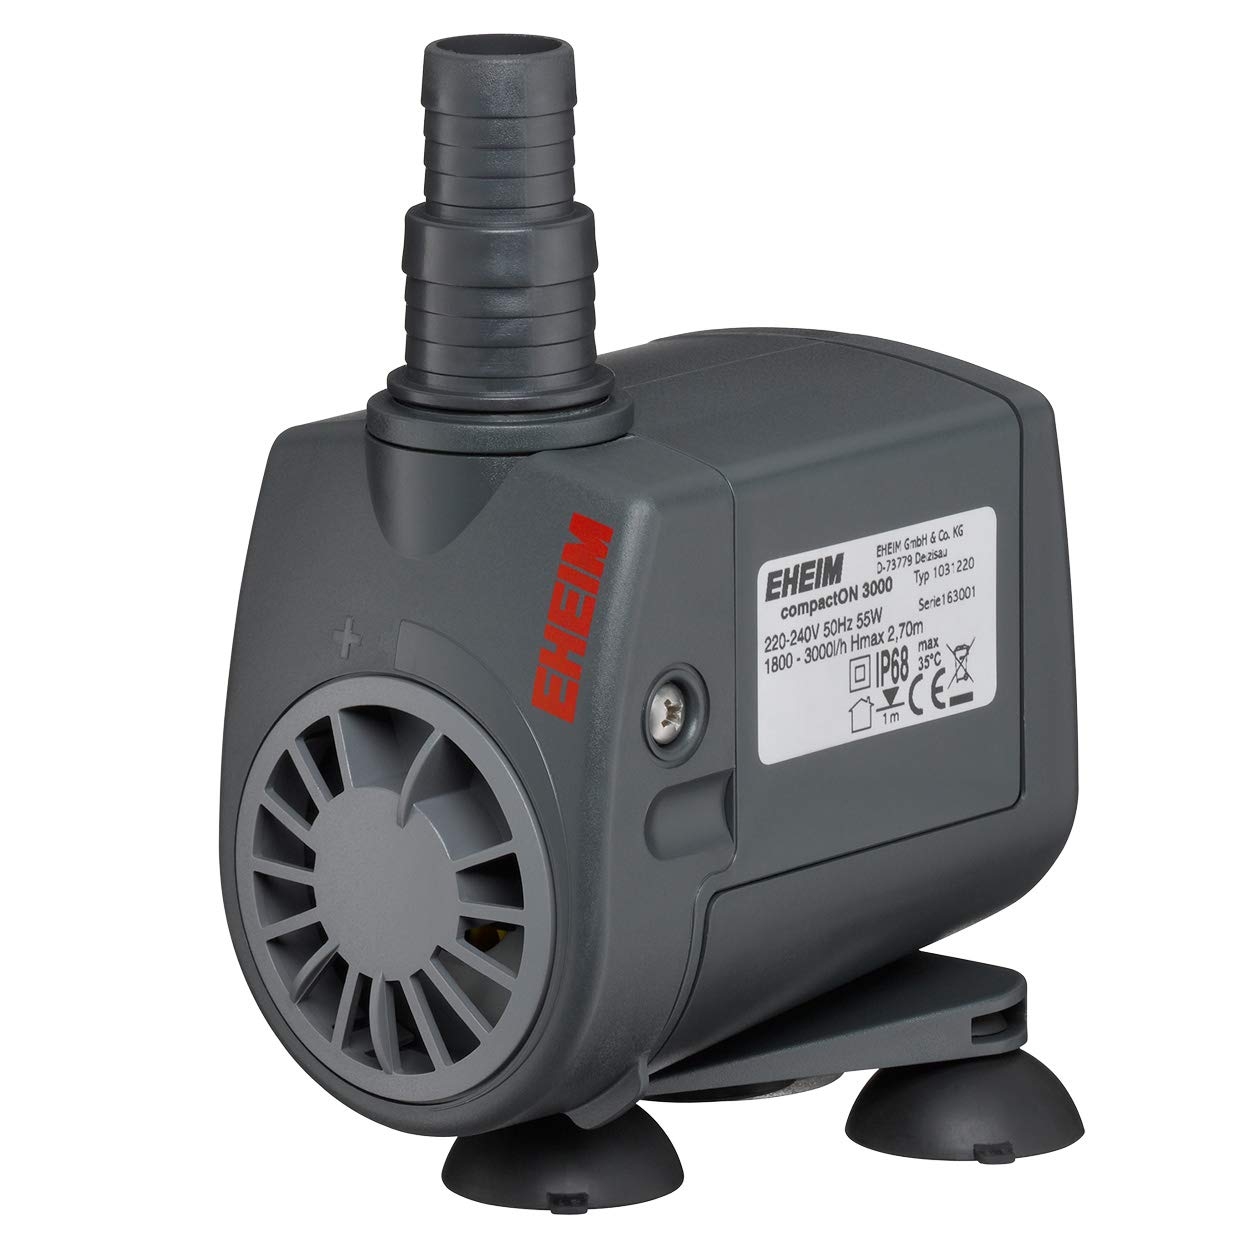 Eheim compactON Aquarium Pump - 3000 by Eheim